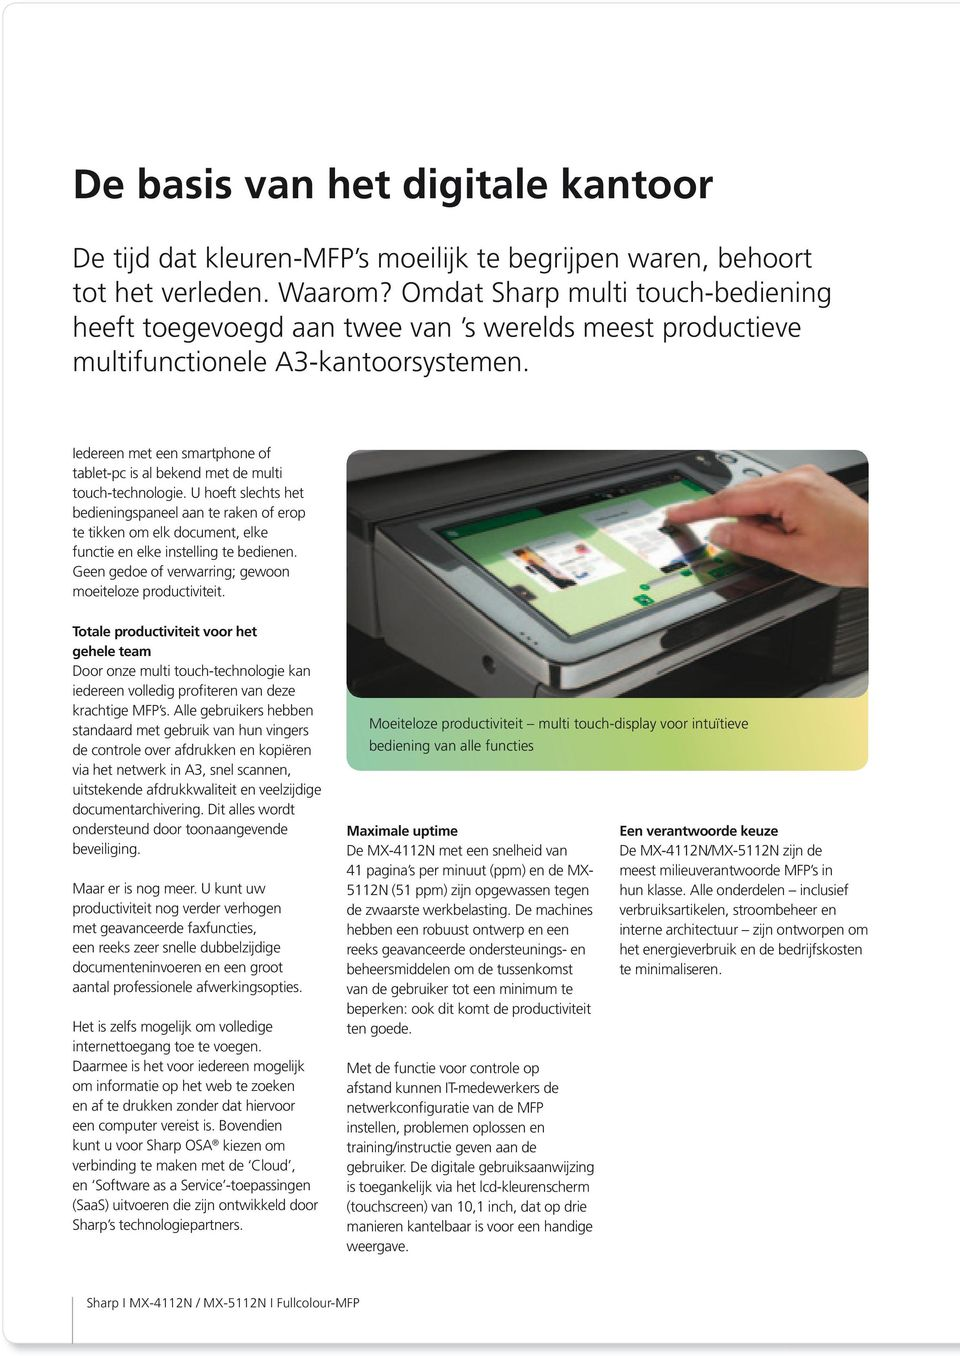 Iedereen met een smartphone of tablet-pc is al bekend met de multi touch-technologie.